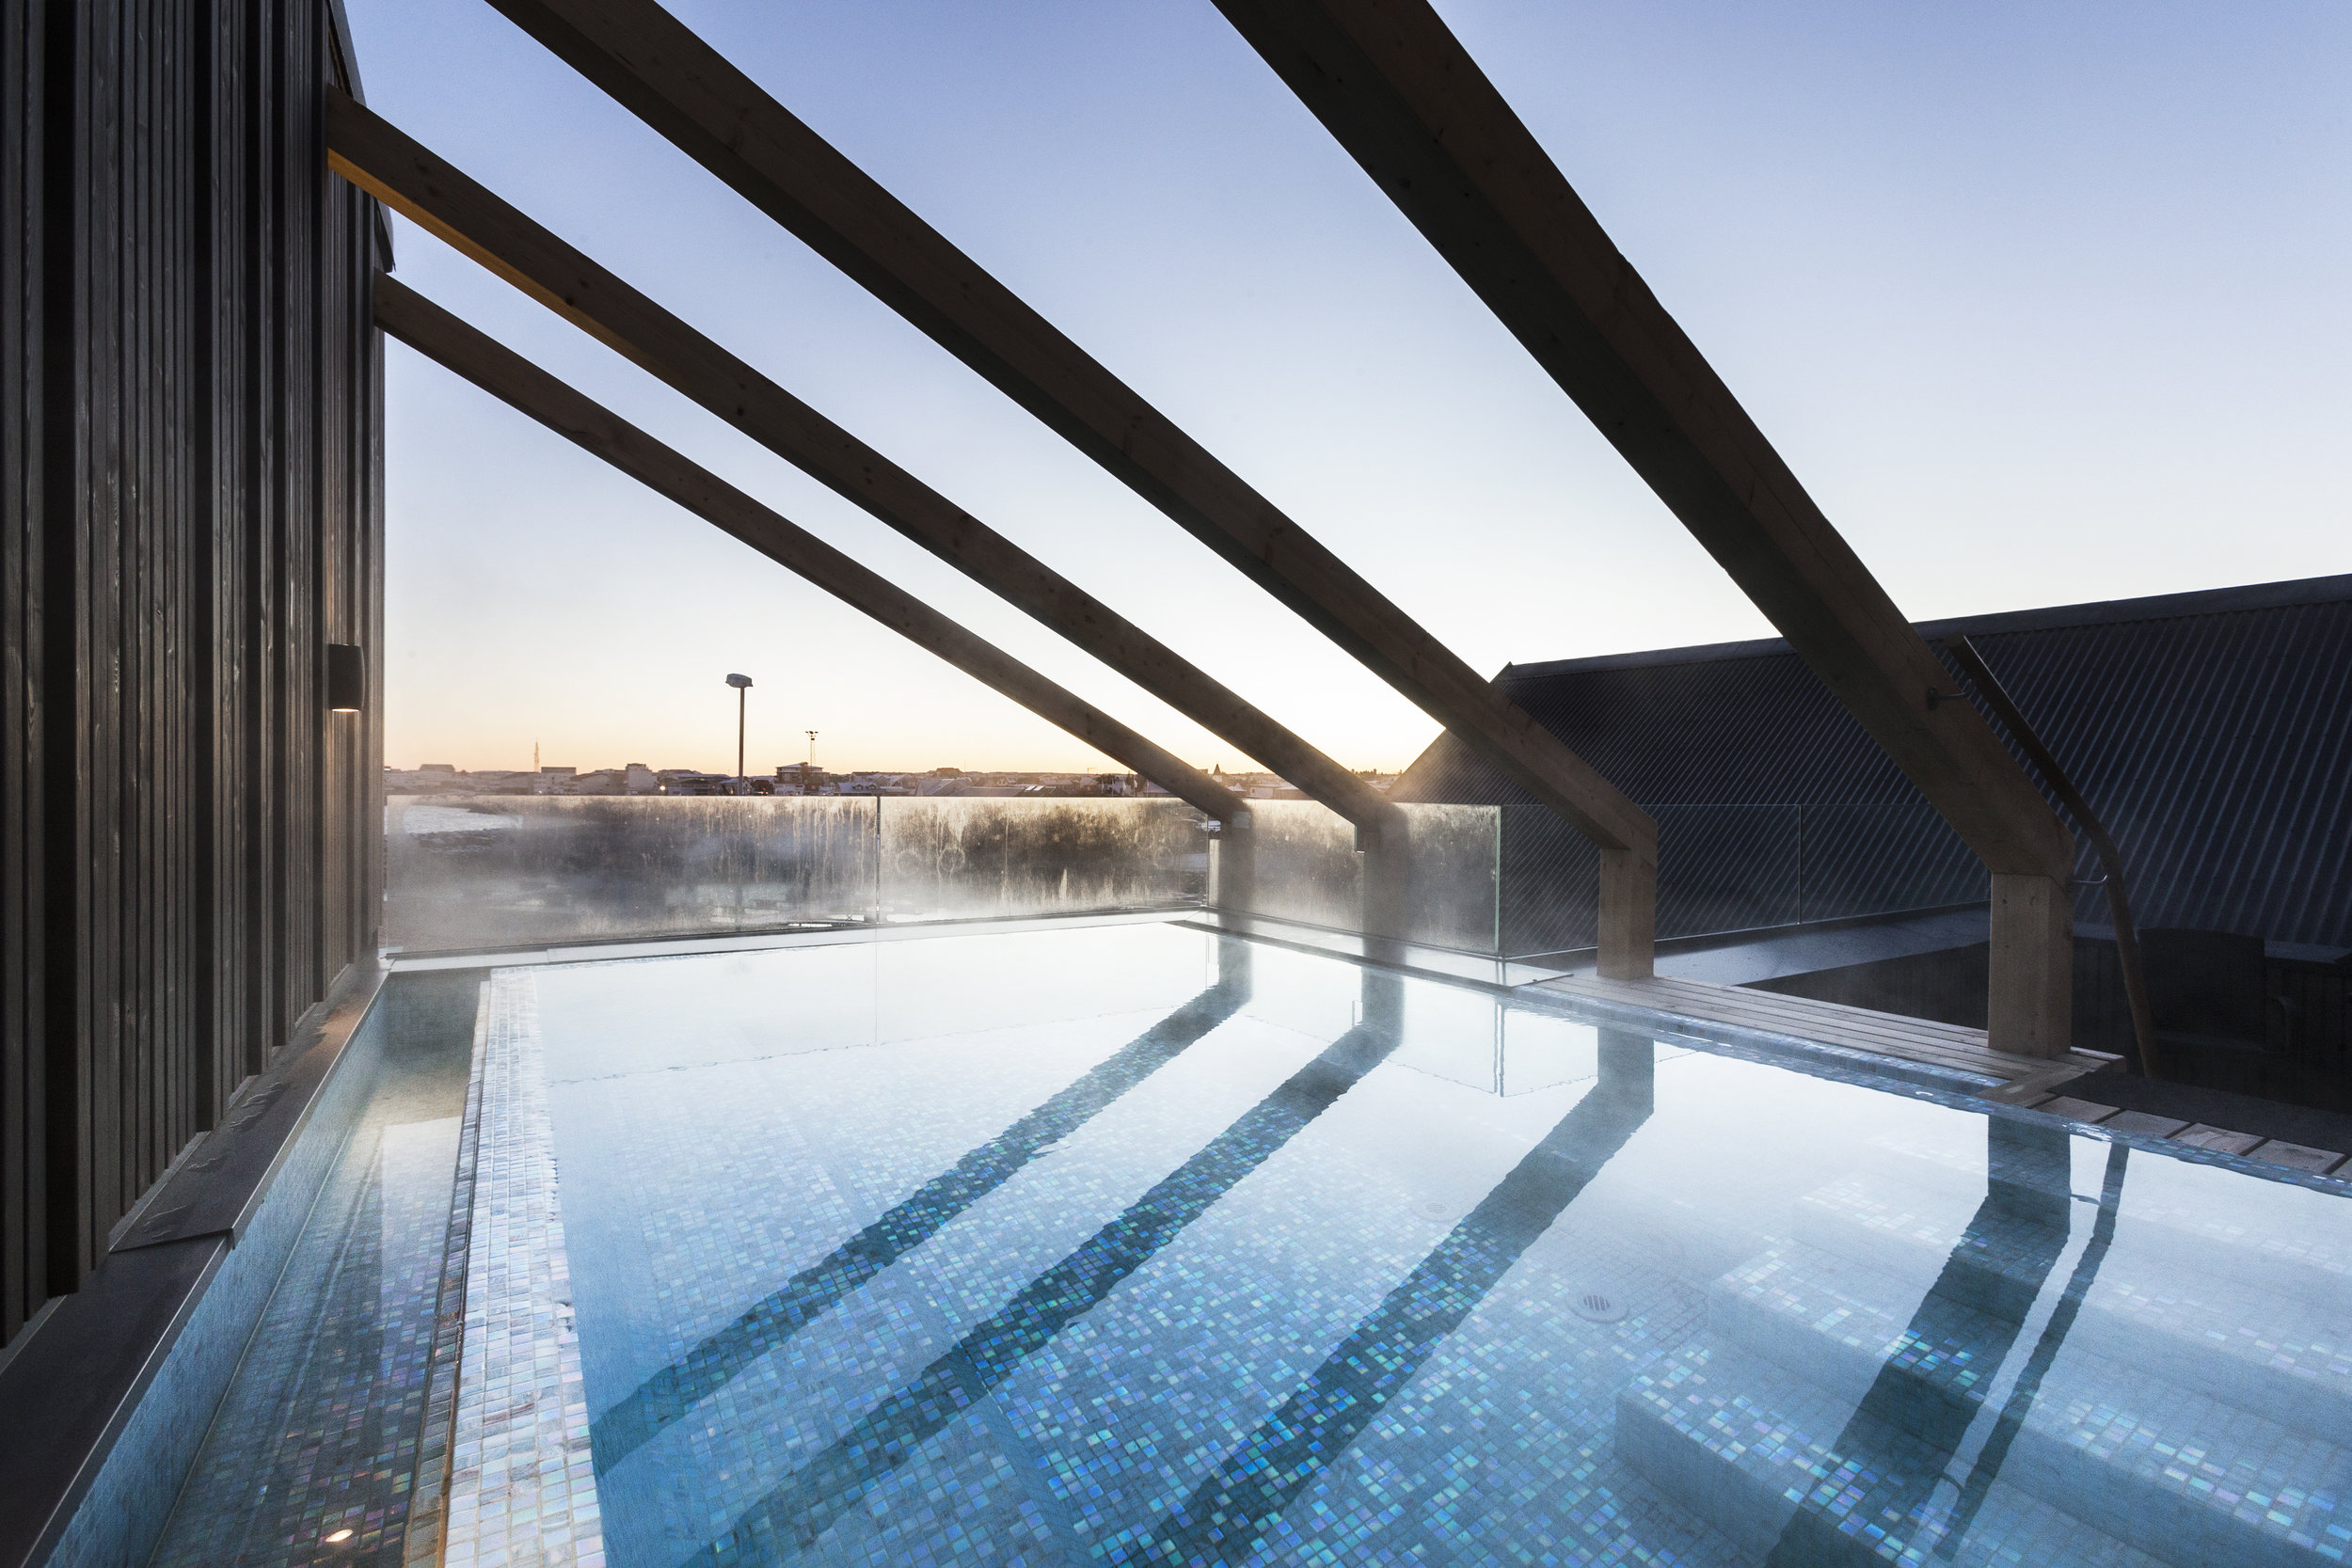 A Sitting Pool with a View - A perfect place to relax after a day exploring the area